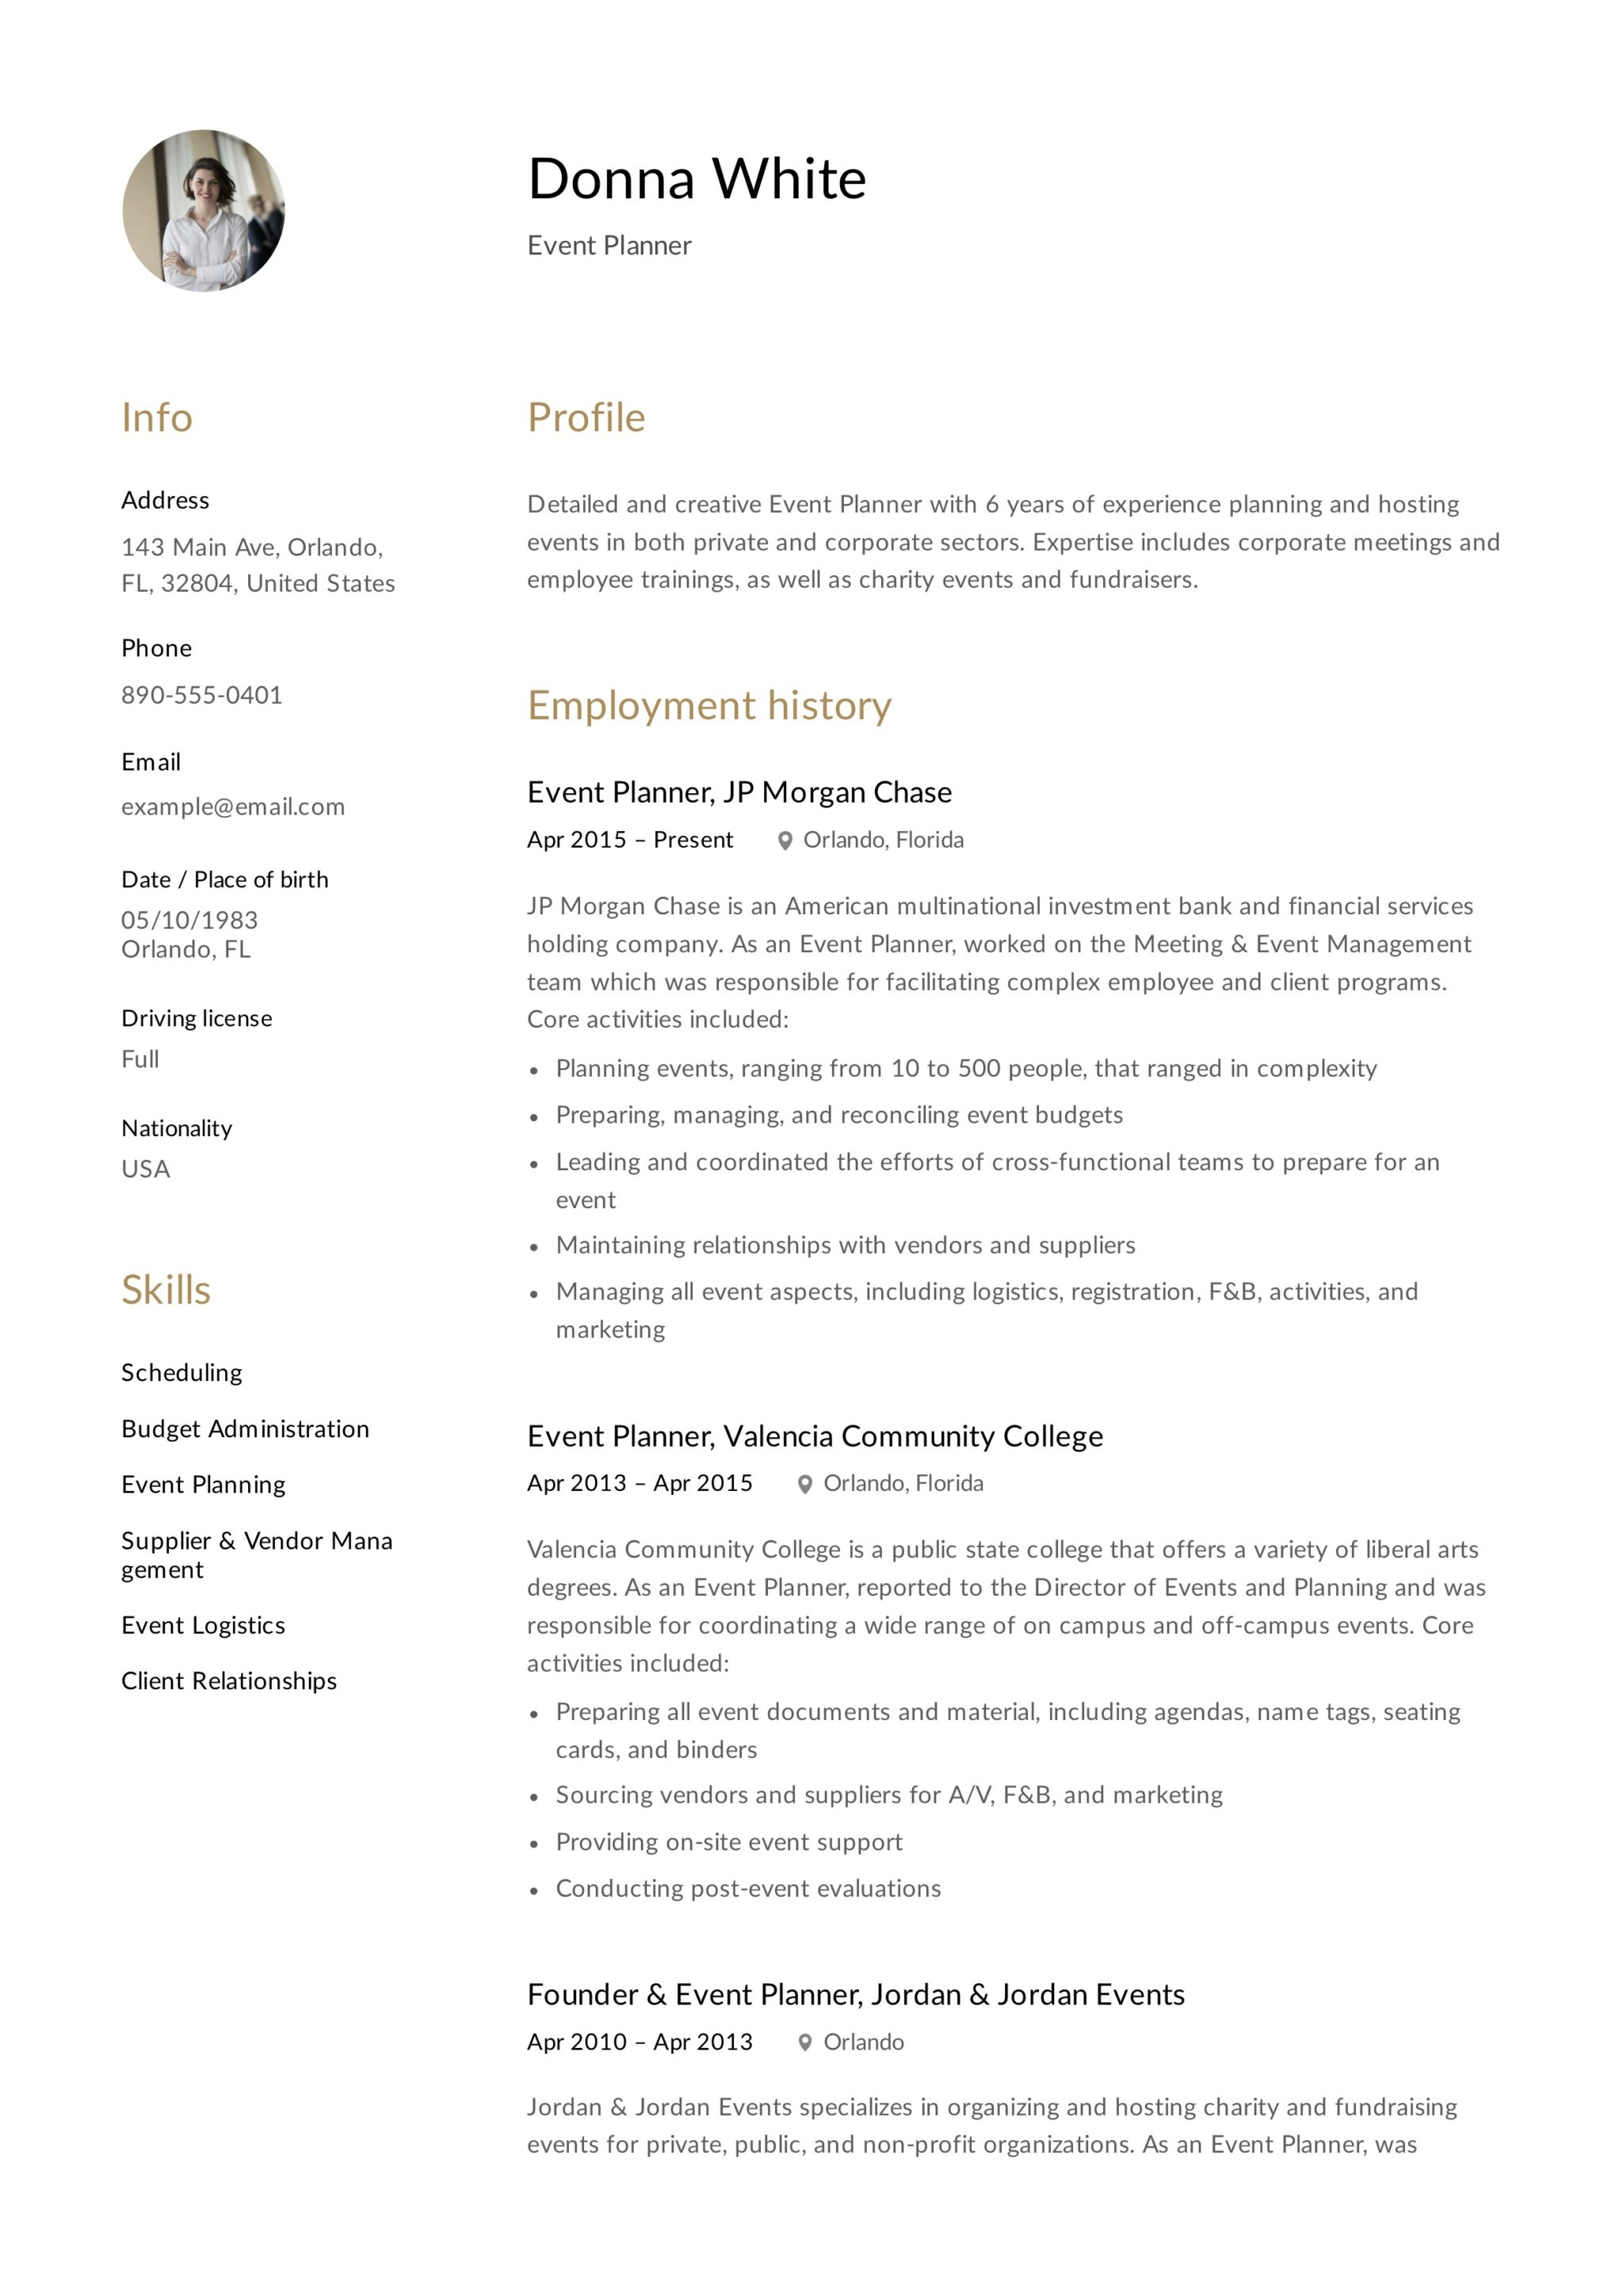 12 Event Planner Resume Sample(s) - 2018 (Free Download)